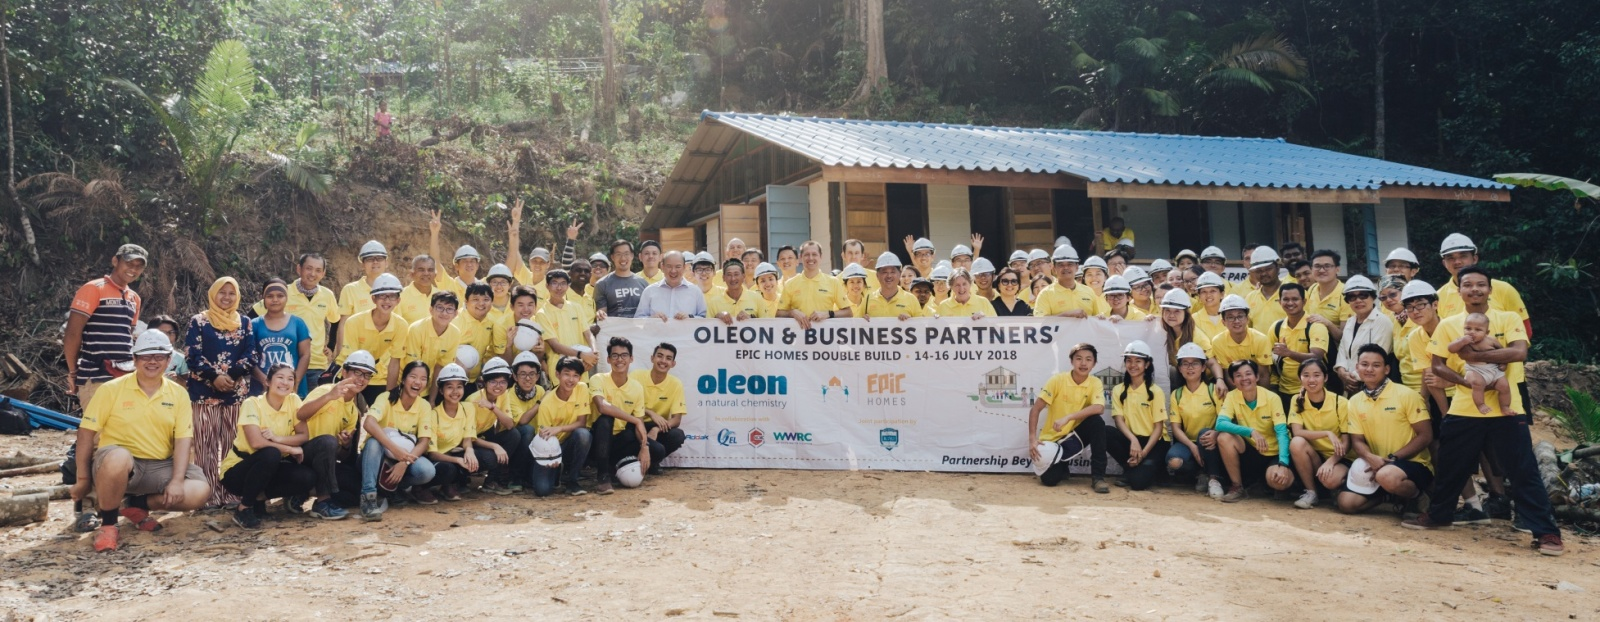 News_20180725_Oleon EPIC Group Photo.jpg